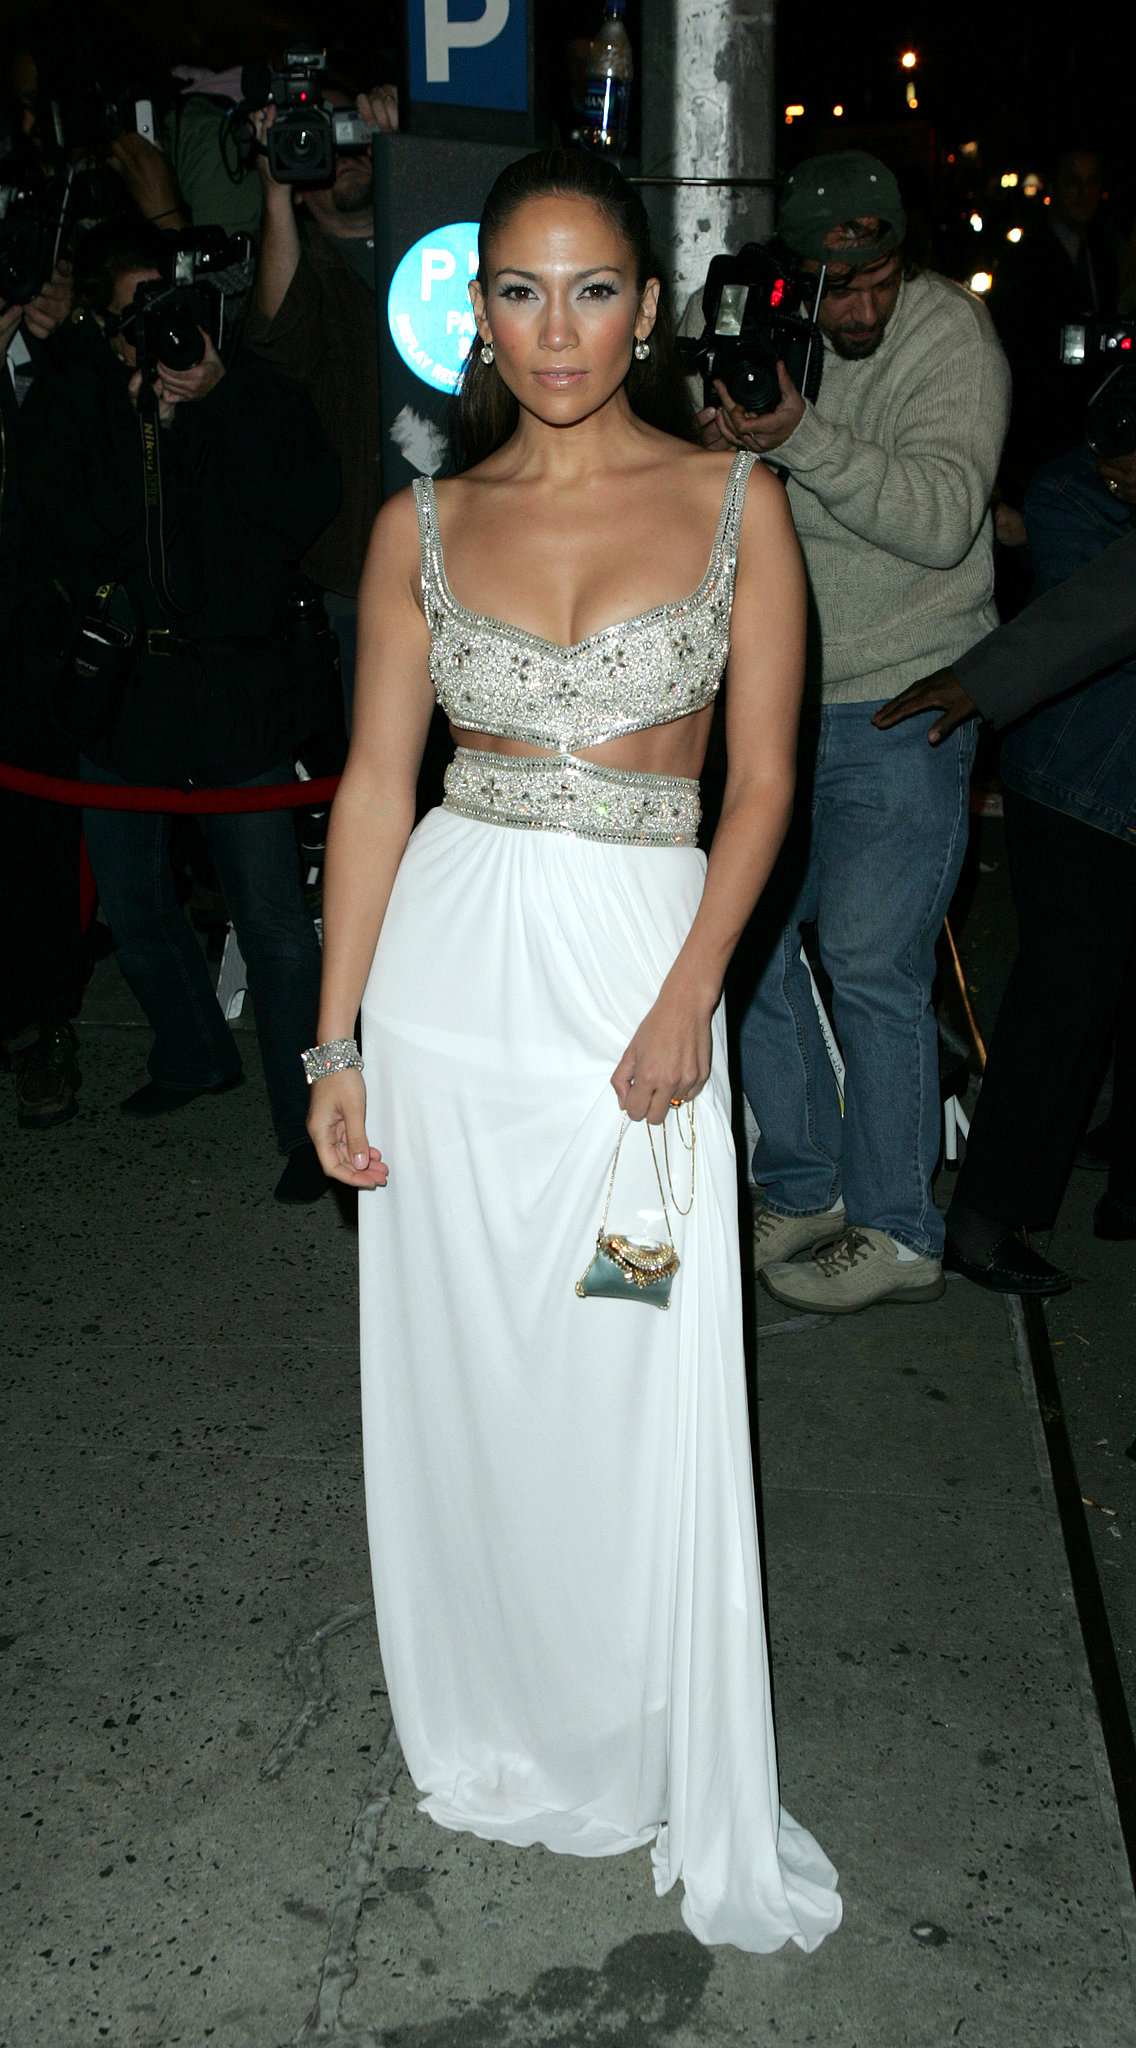 Delicate beading and cutouts adorned this white gown for the Shall We Dance premiere in '04.